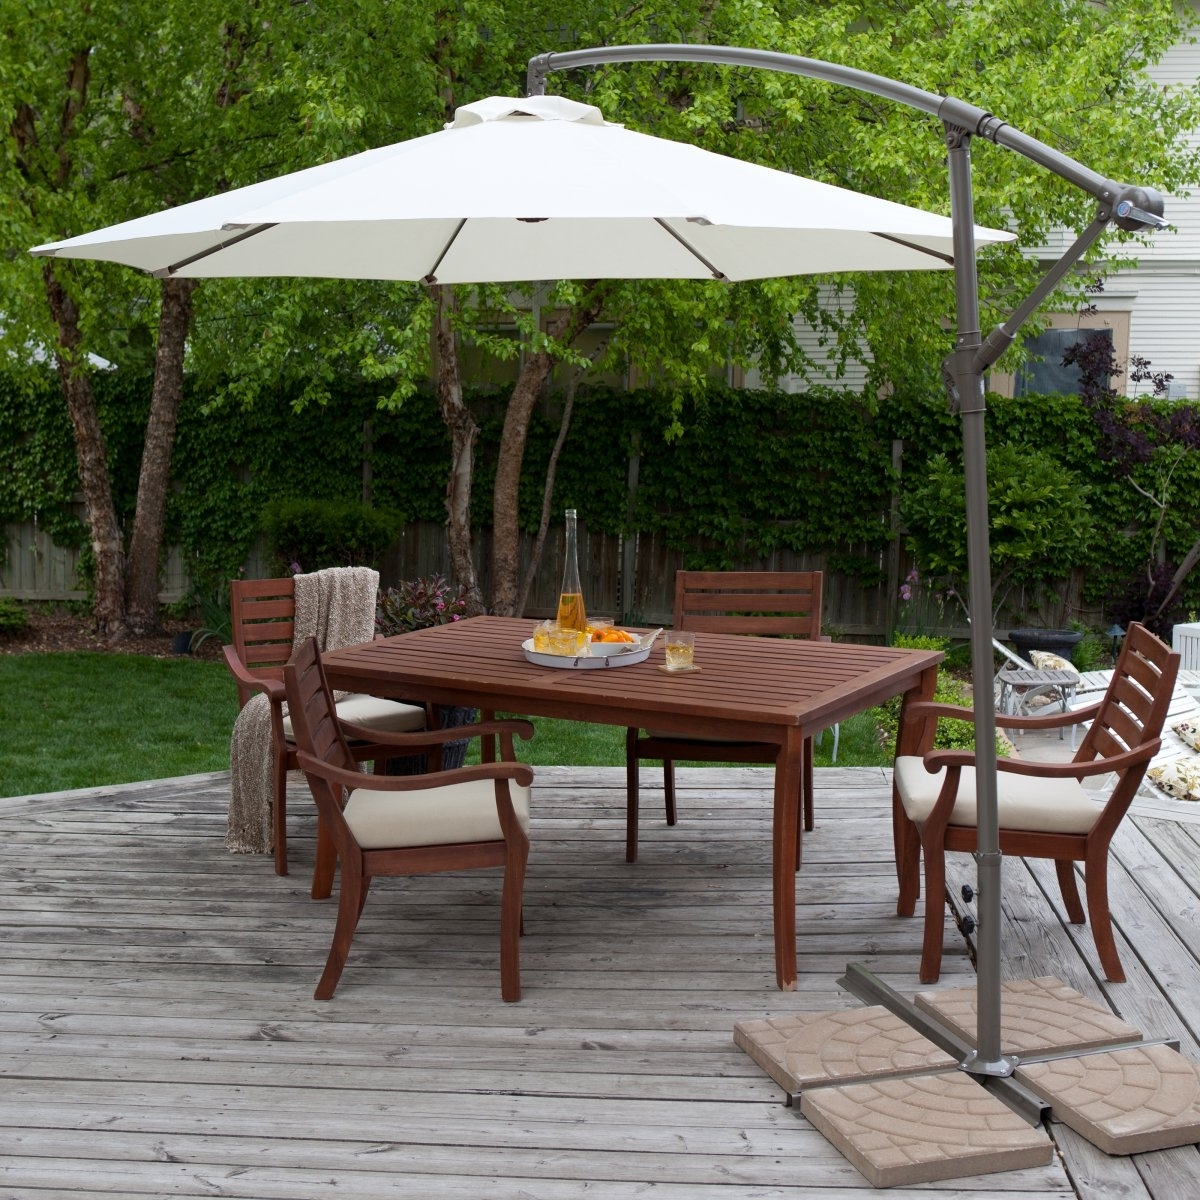 Favorite The Patio Table Umbrella For Comfort Gathering — Mistikcamping Home Throughout Free Standing Umbrellas For Patio (View 7 of 20)